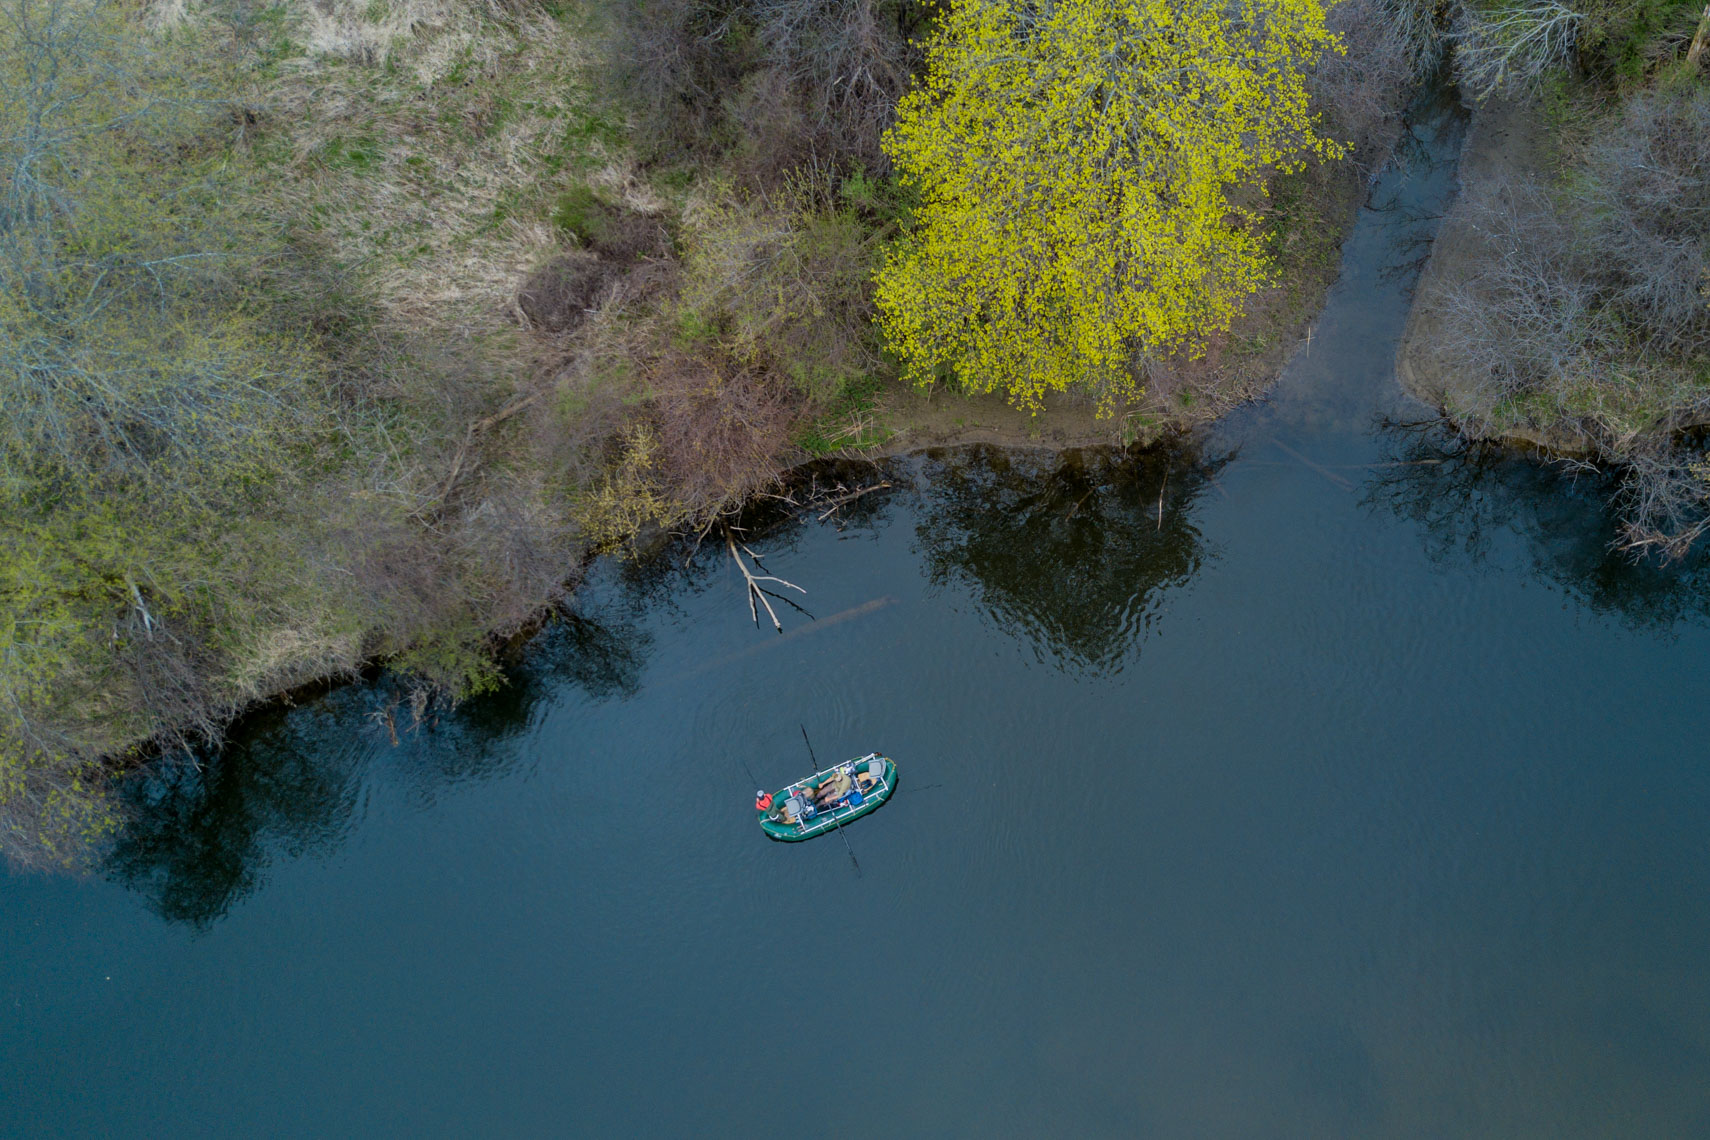 Fly fishing for Pike as seen from above.